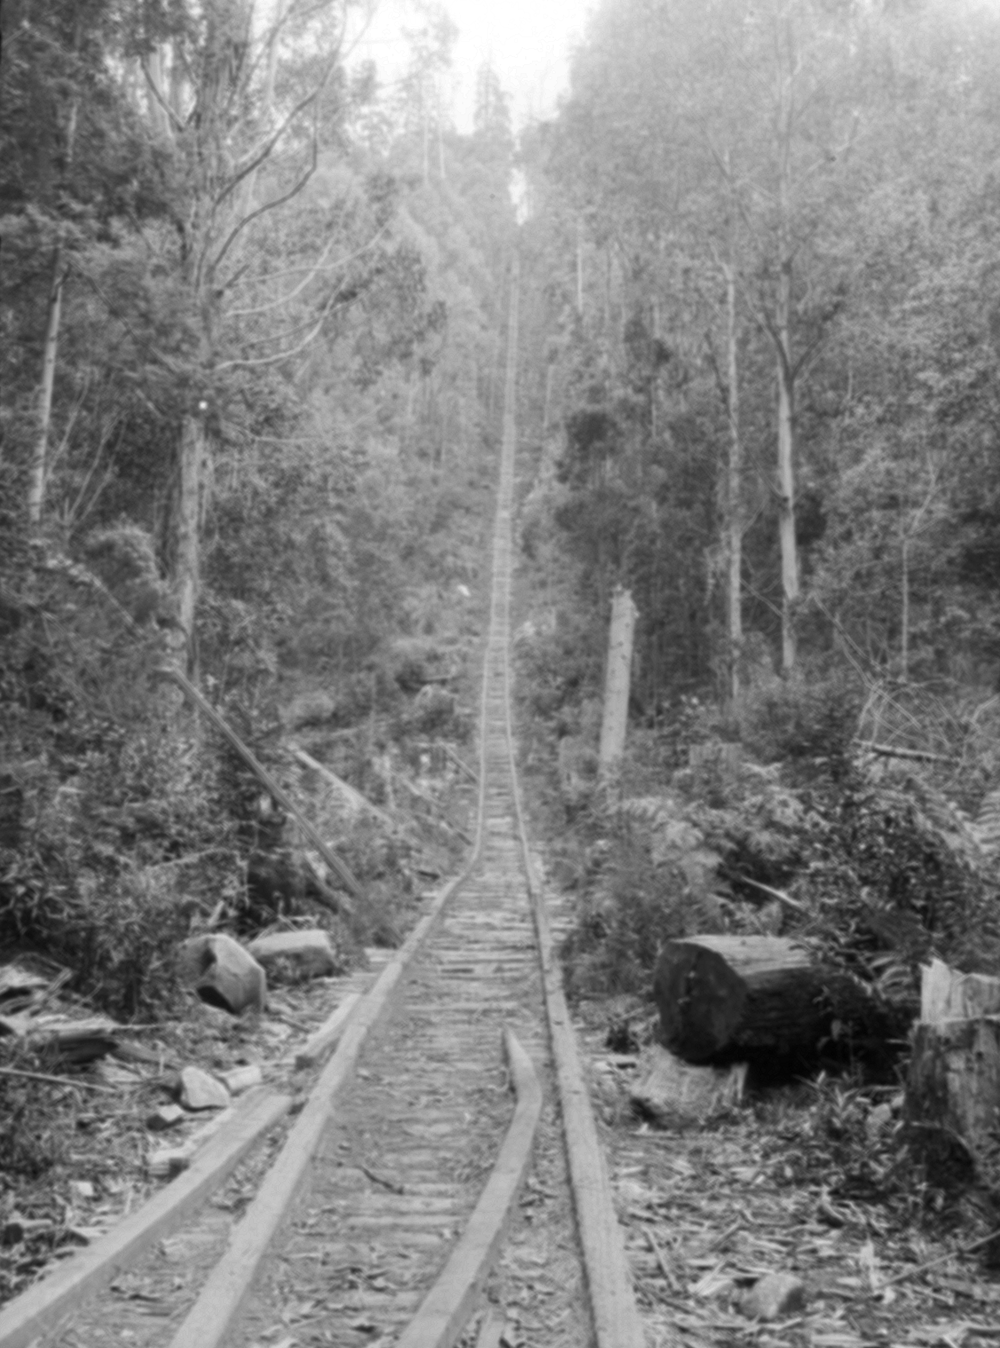 Jacob's Ladder incline on Currie's tramway from Millgrove, terminated at the Ben Cairn Road, 2 km west of the turnoff to Donna Buang Summit. It continued to be used for pedestrian access to the mountain long after the tramway closed in 1934.